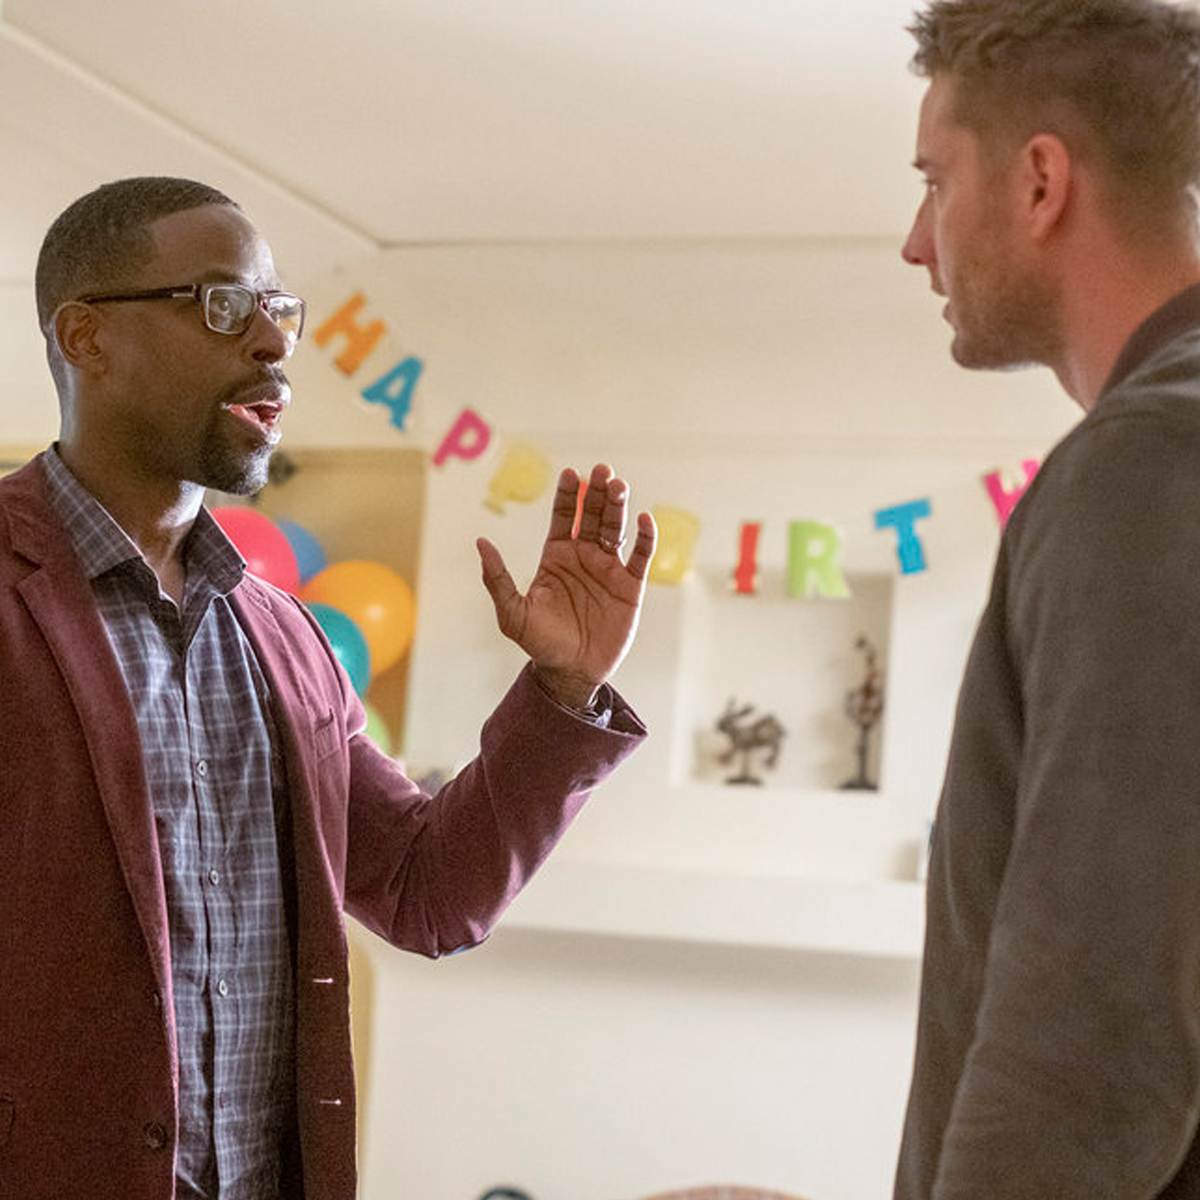 This Is Us Bumped Up the Season 5 Premiere Date: Here's When the Pearsons Will Return